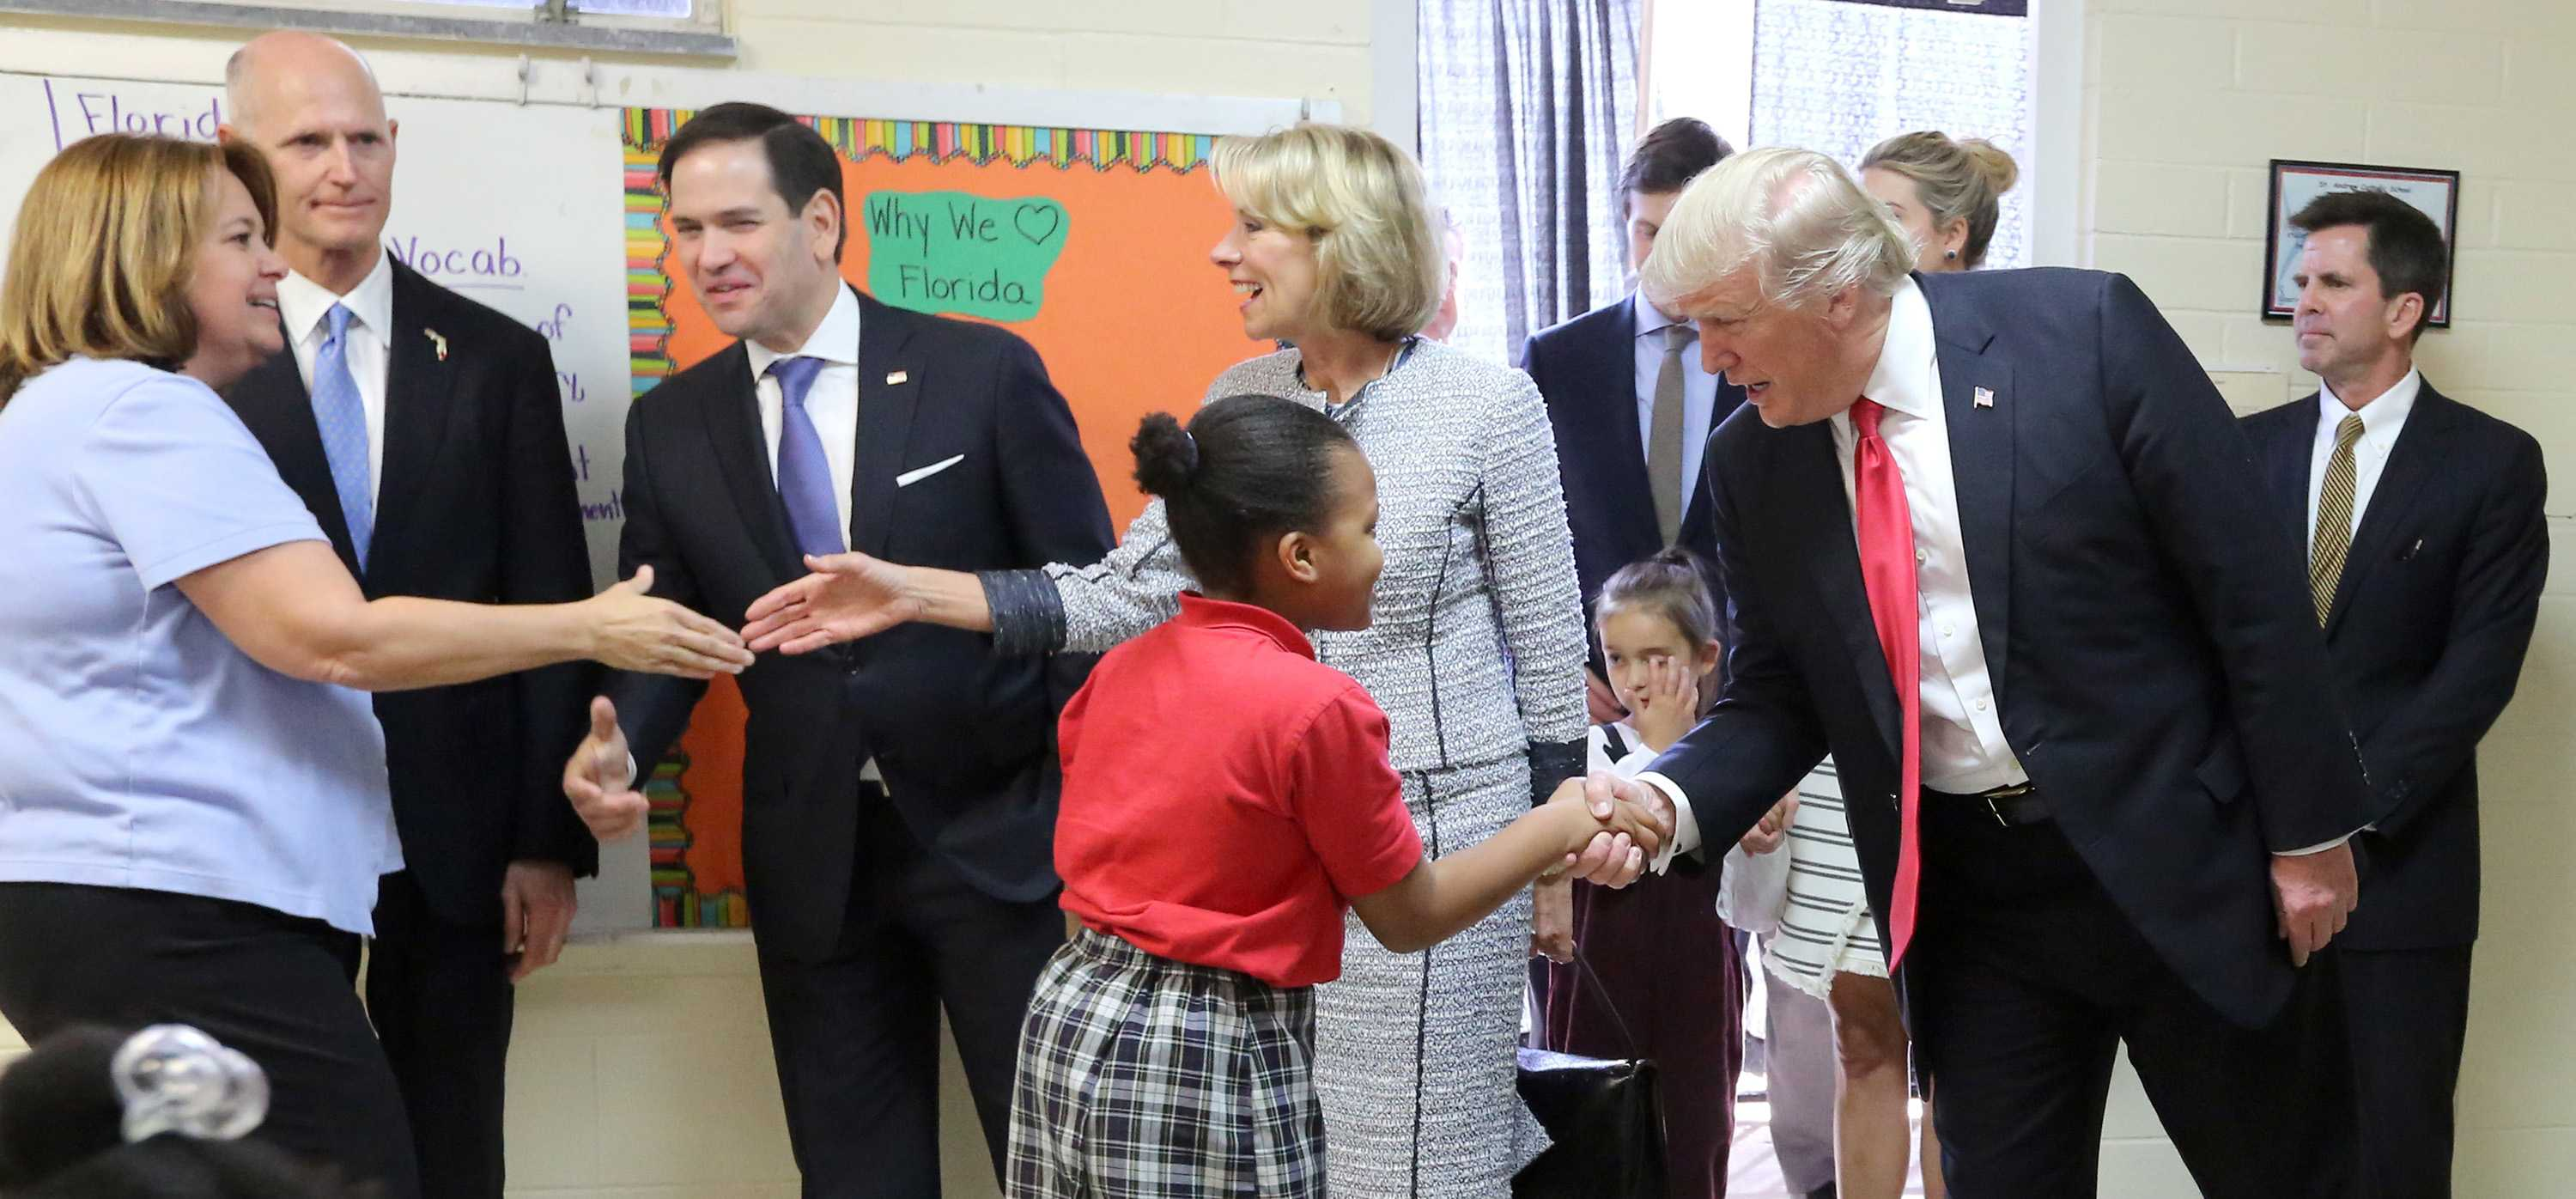 President Donald Trump greets fourth grader Janayah Chatelier as U.S. Secretary of Education Betsy DeVos greets St. Andrew Catholic School fourth grade teacher Jane Jones on March 3, 2017, in Orlando, Fla. Looking on is Florida governor Rick Scott, second from left, Florida senator Marco Rubio, third from left, and John Kirtley, far right, a tax-credit scholarship proponent. (Joe Burbank/Orlando Sentinel/TNS)